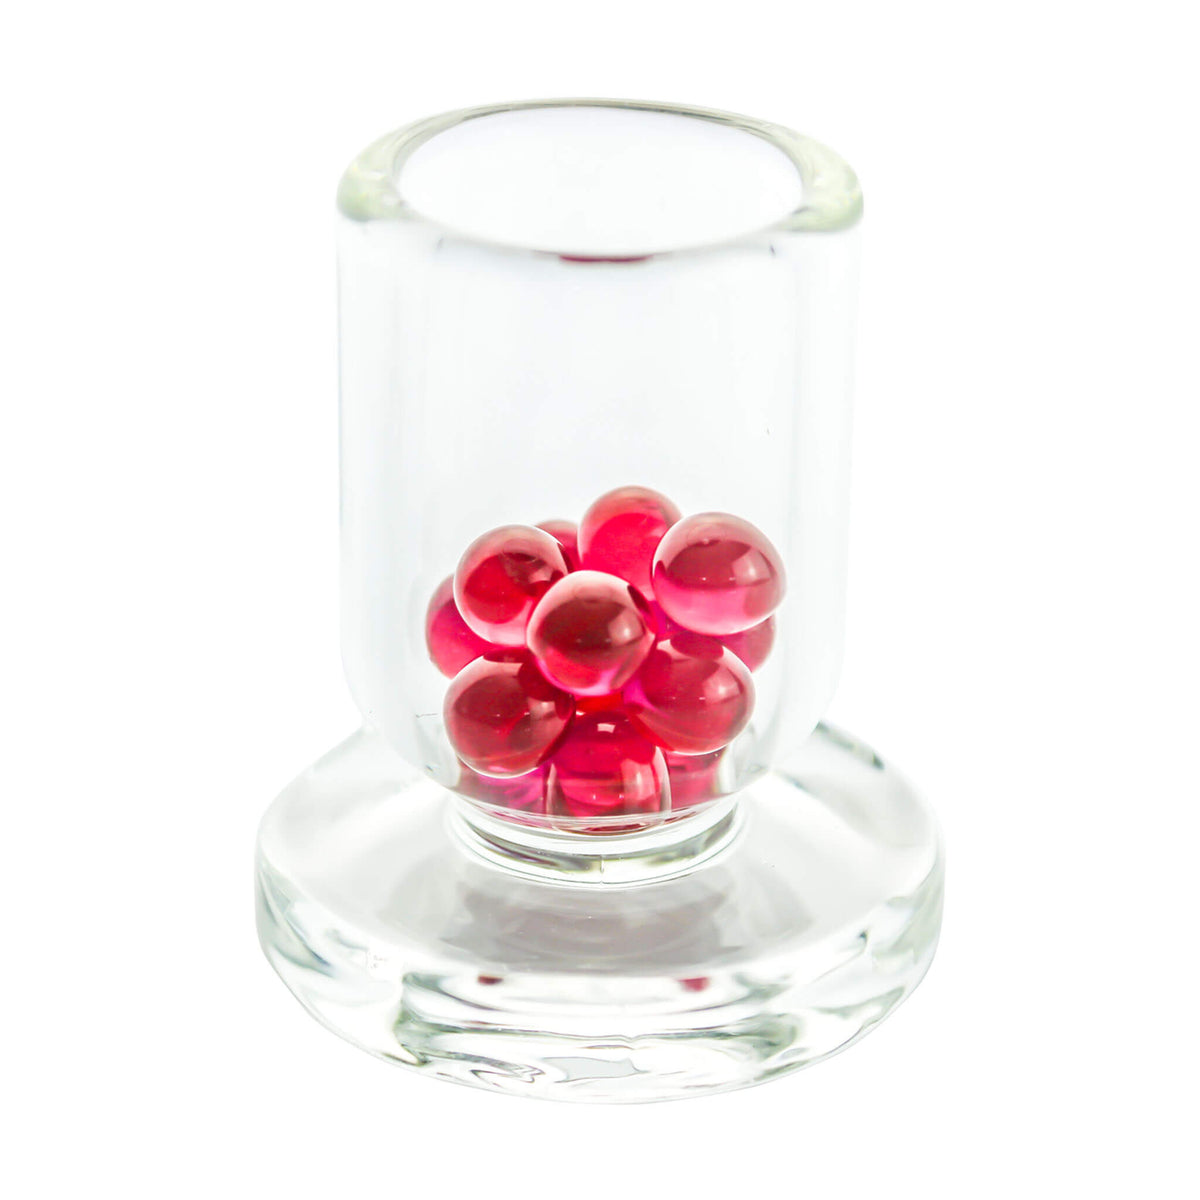 6mm Terp (Dab) Pearls-Ruby_in cup